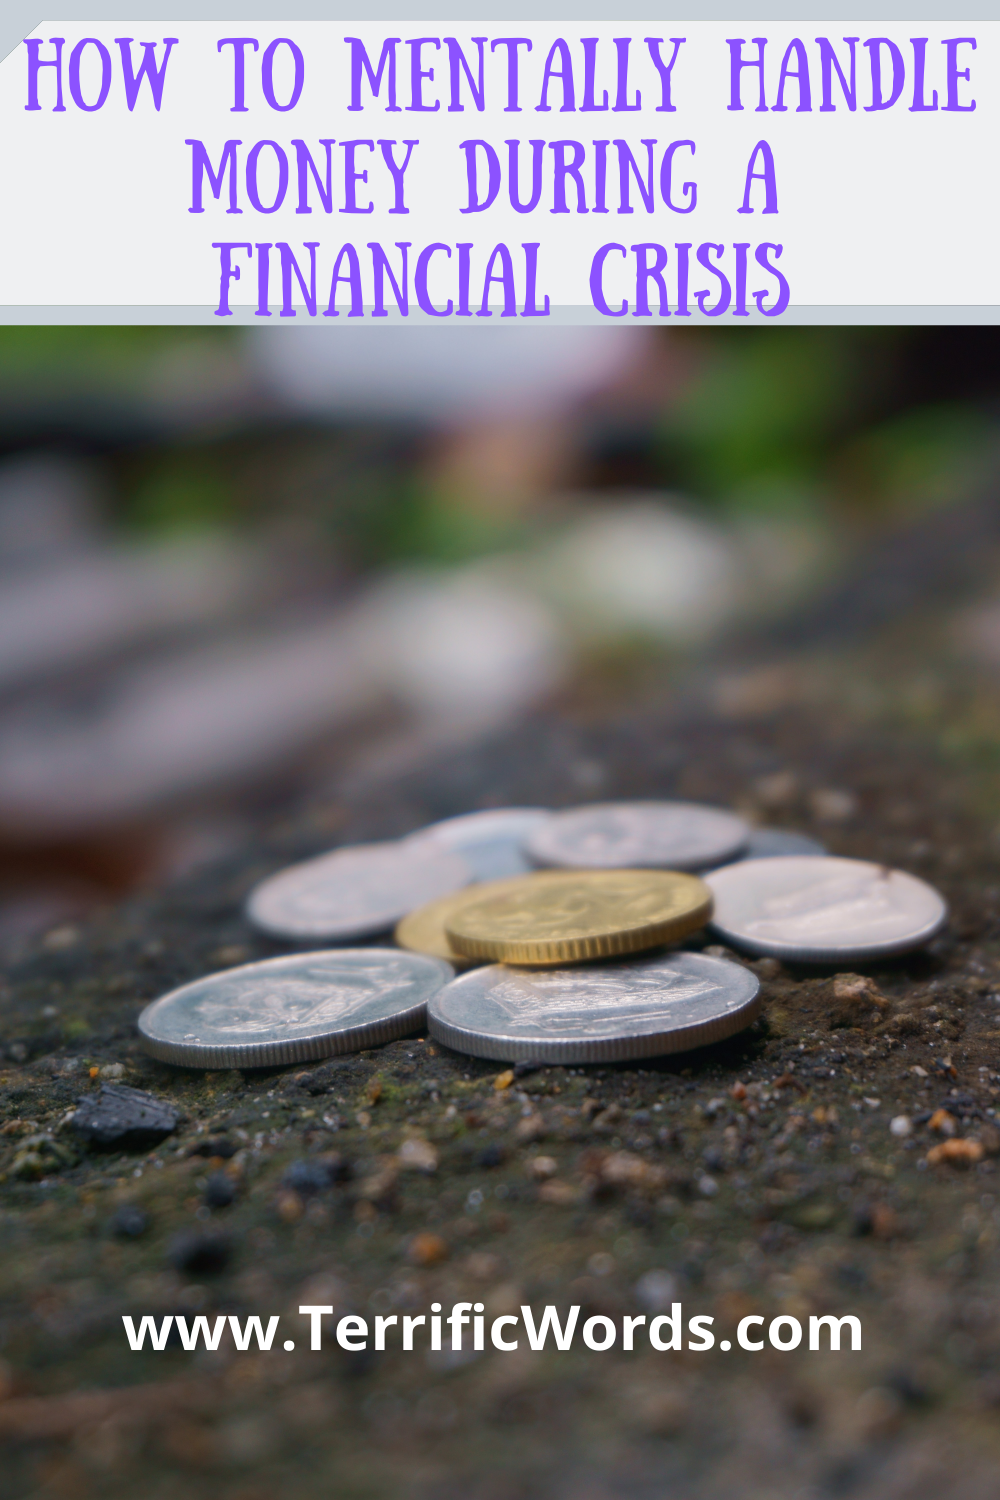 How to deal with financial stress during a crisis